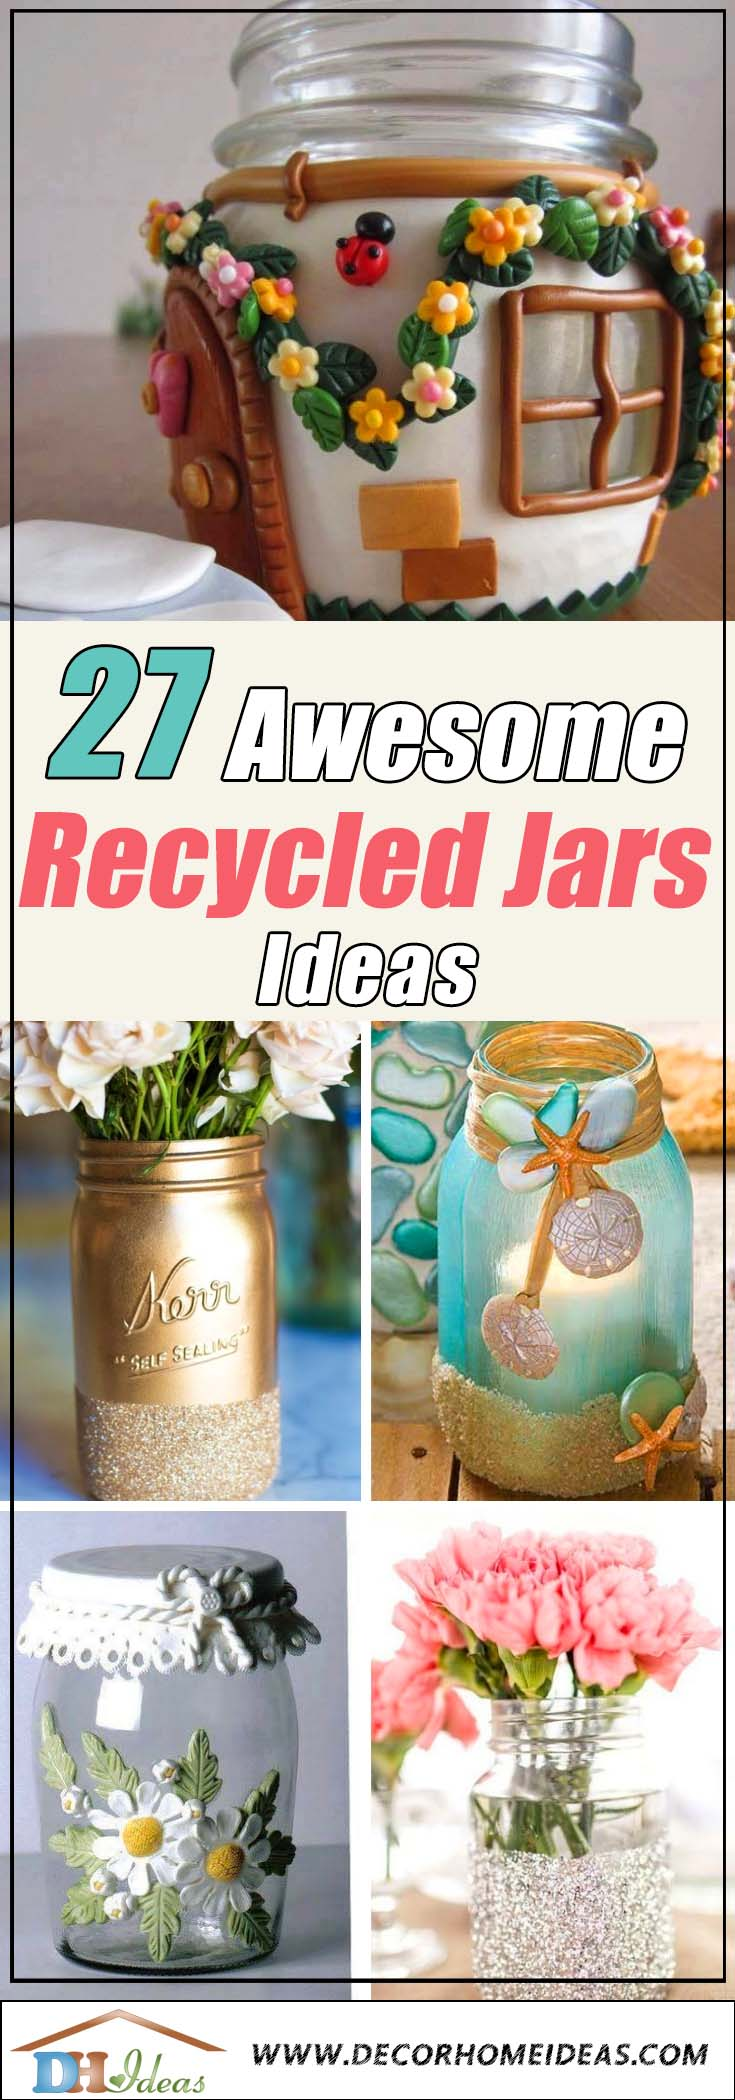 27 Awesome Recycled Jars Ideas For Every Home | DIY your own amazing recycled jars with these decor ideas #jars #recycledjars #decoratingideas #homedecor #decorating #diy #home #decorhomeideas